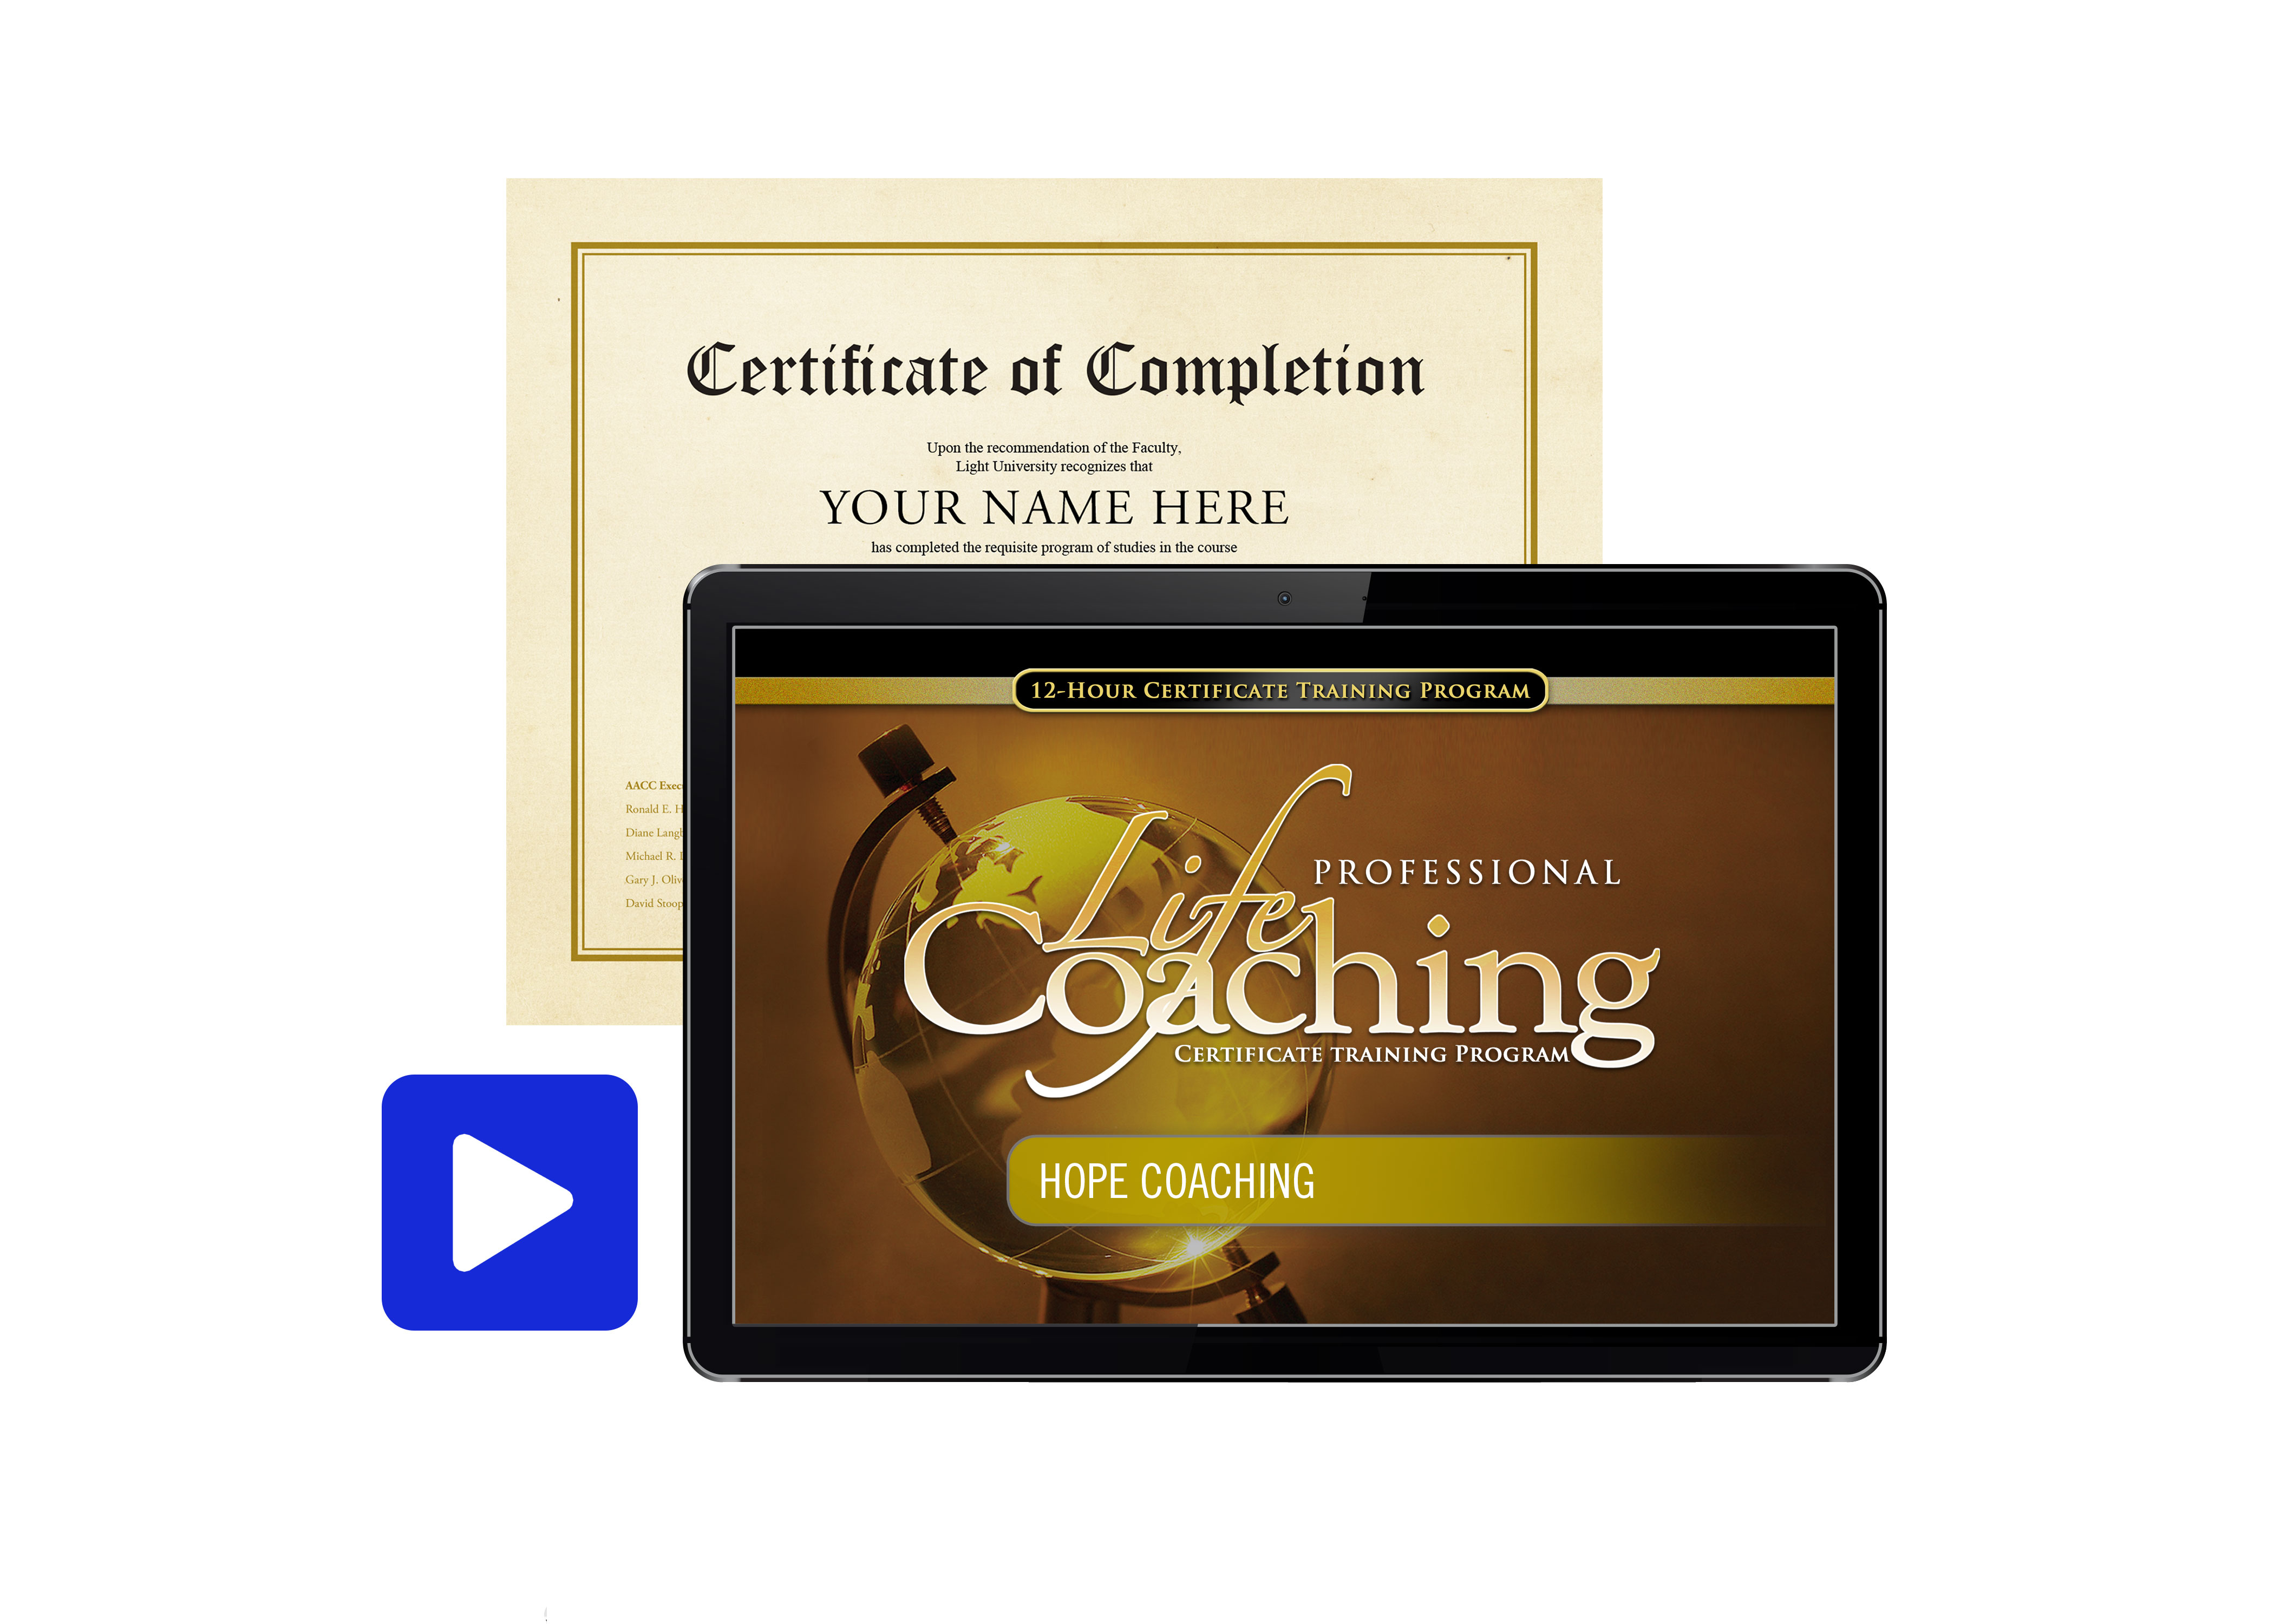 Hope Coaching